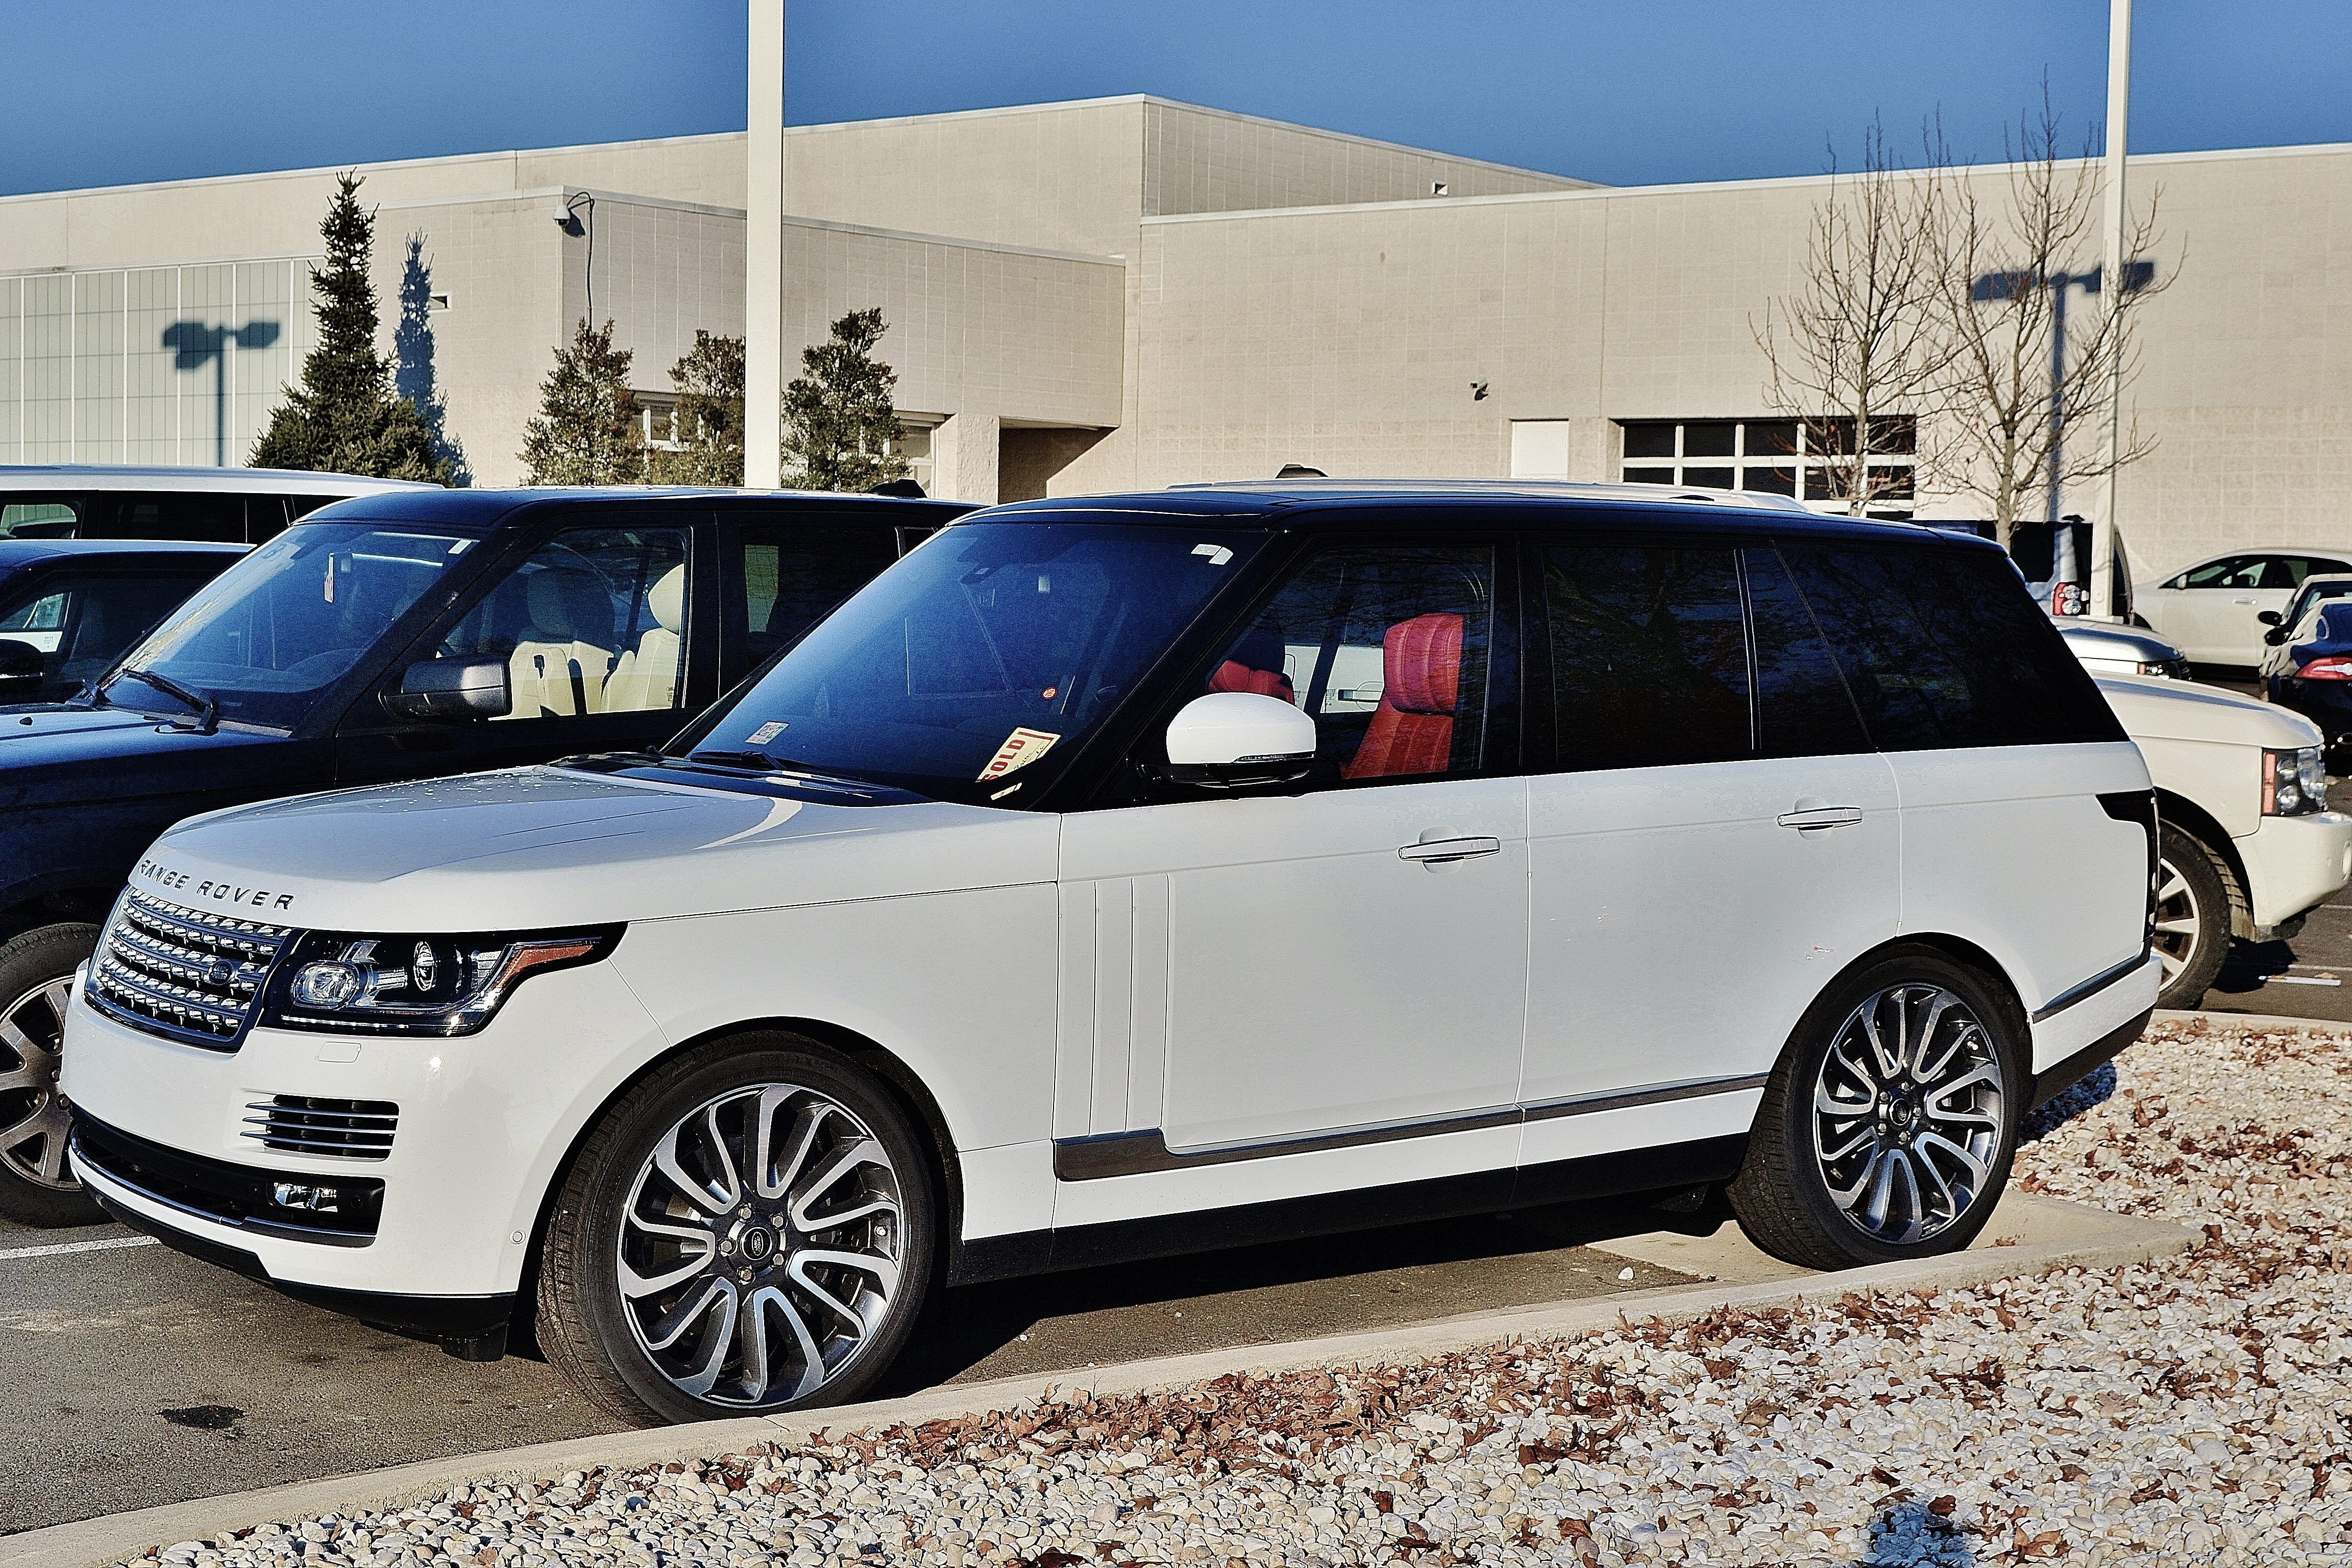 Landrover Autobiography Limited Edition 135 000 Msrp Cool Dmv Luxury Rich Land Rover Range Rover Suv Car